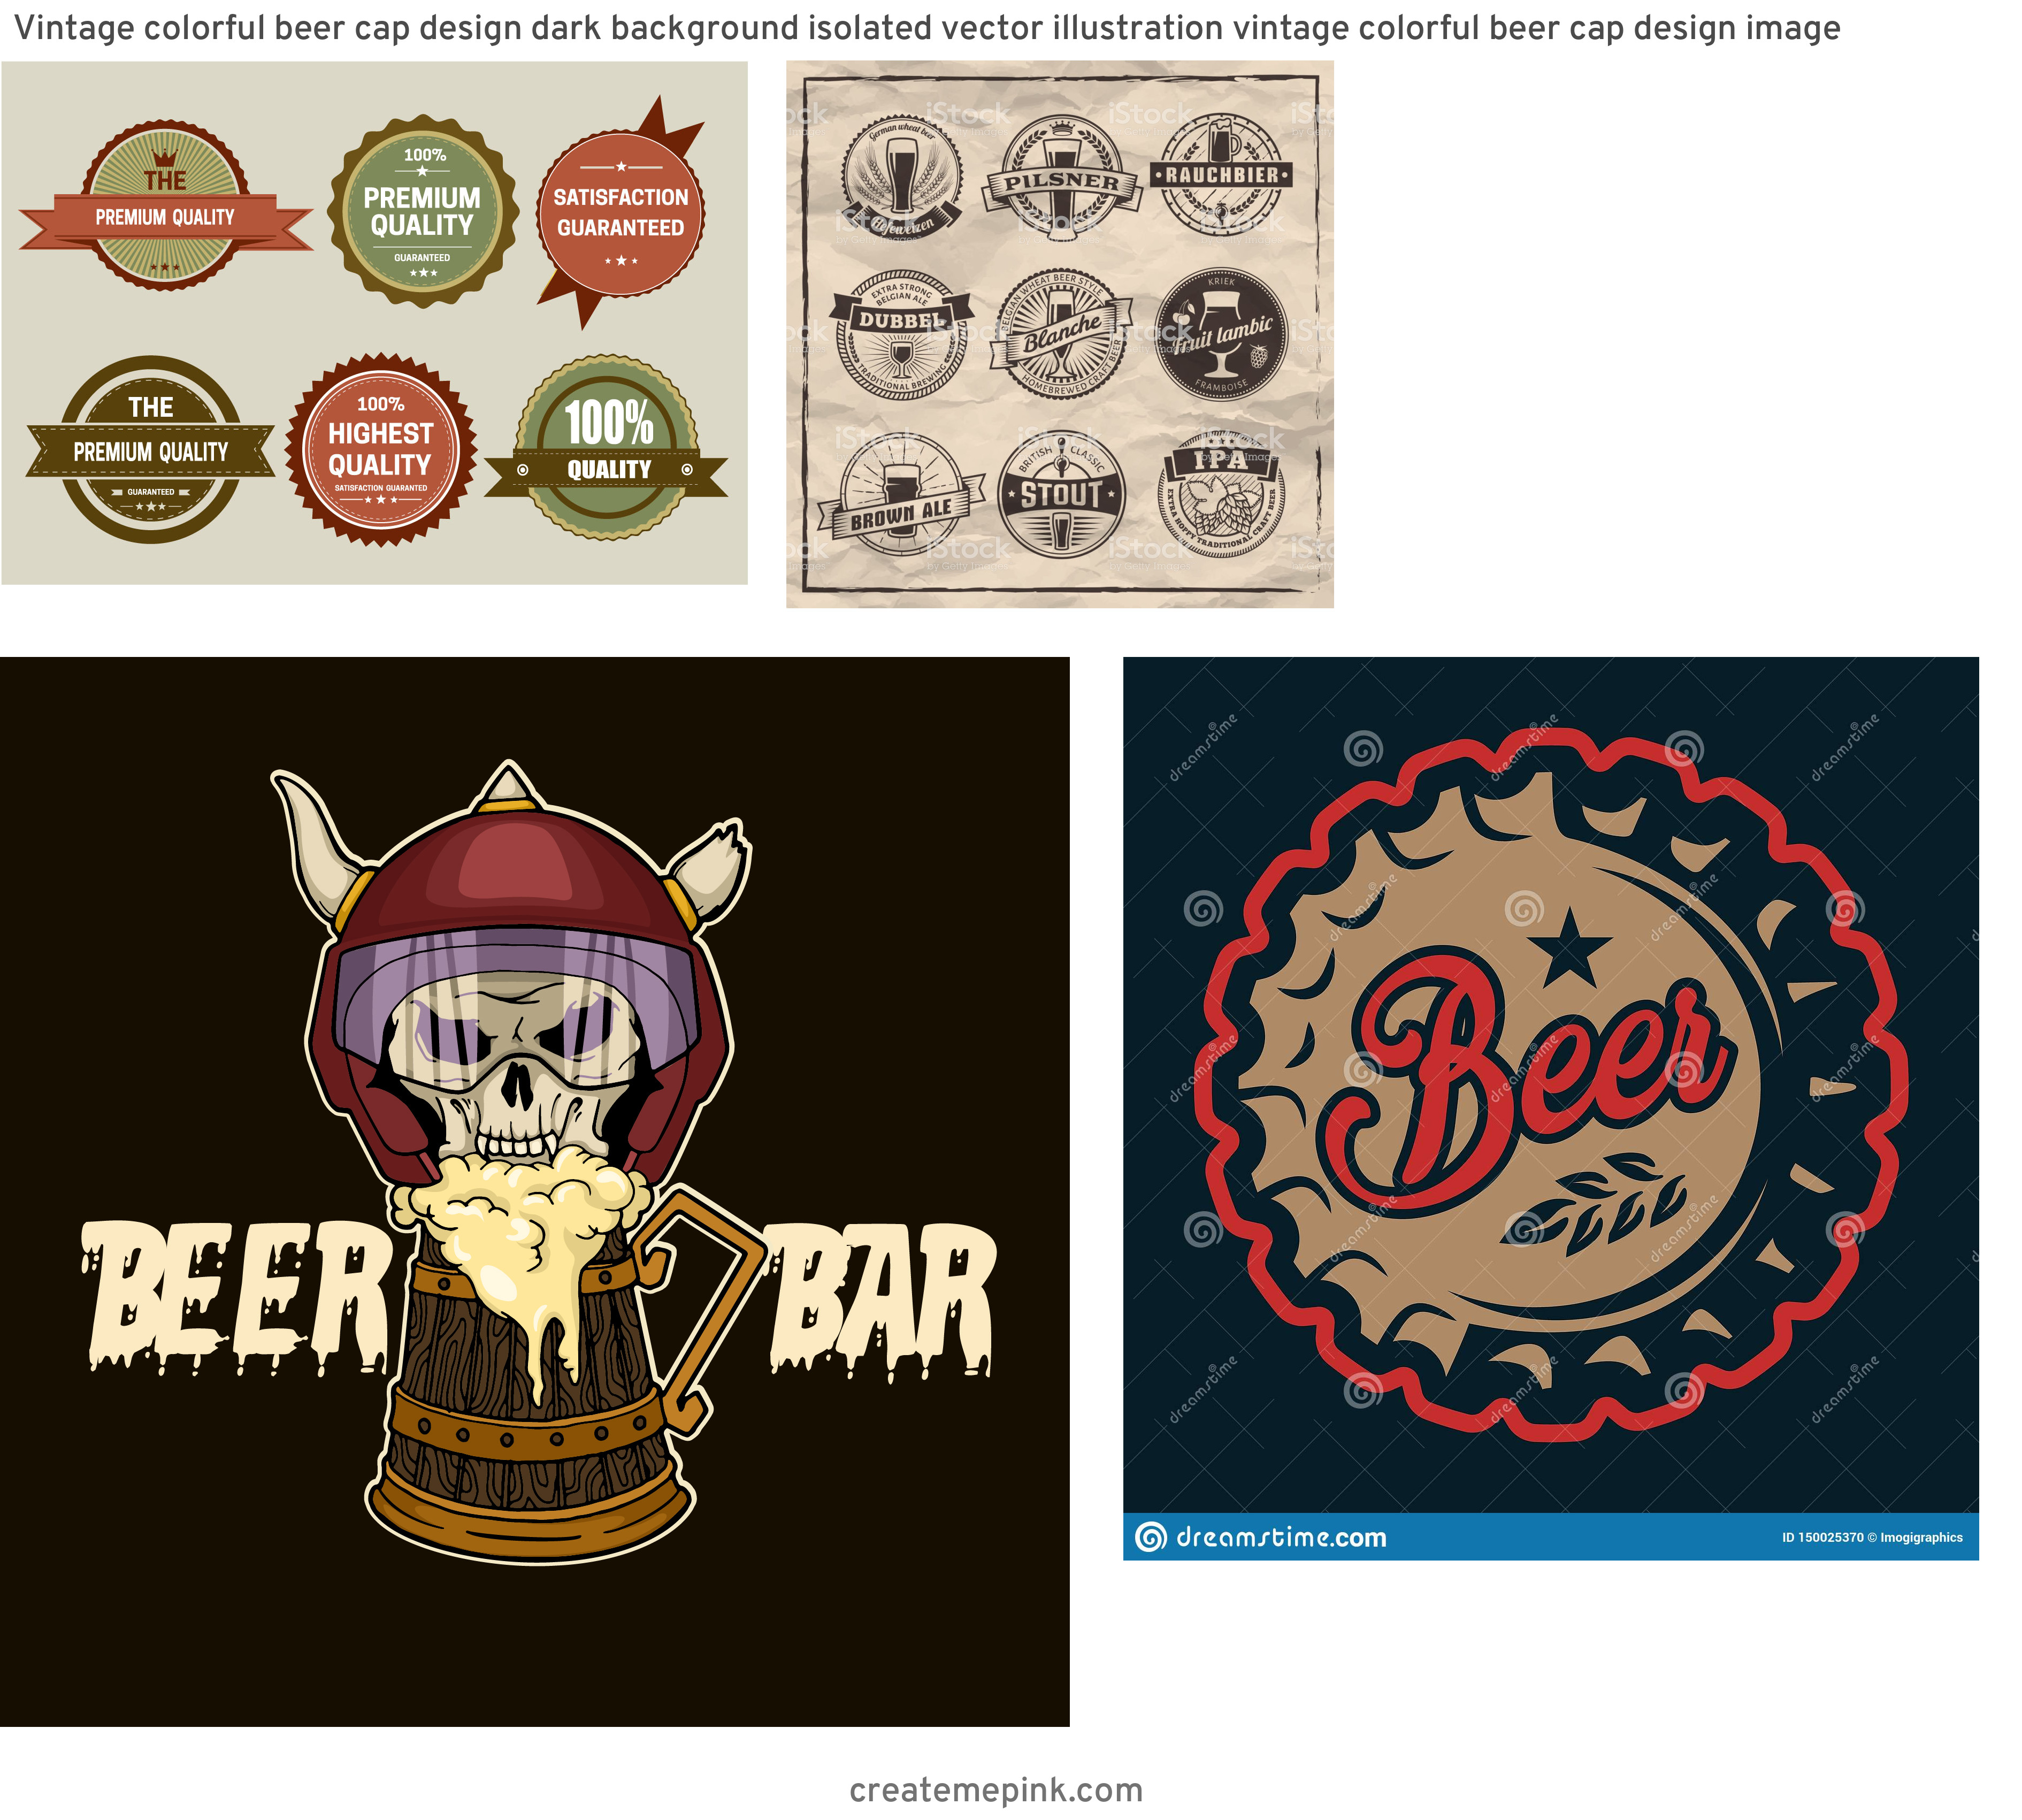 Custom Beer Labels Vector Graphics: Vintage Colorful Beer Cap Design Dark Background Isolated Vector Illustration Vintage Colorful Beer Cap Design Image